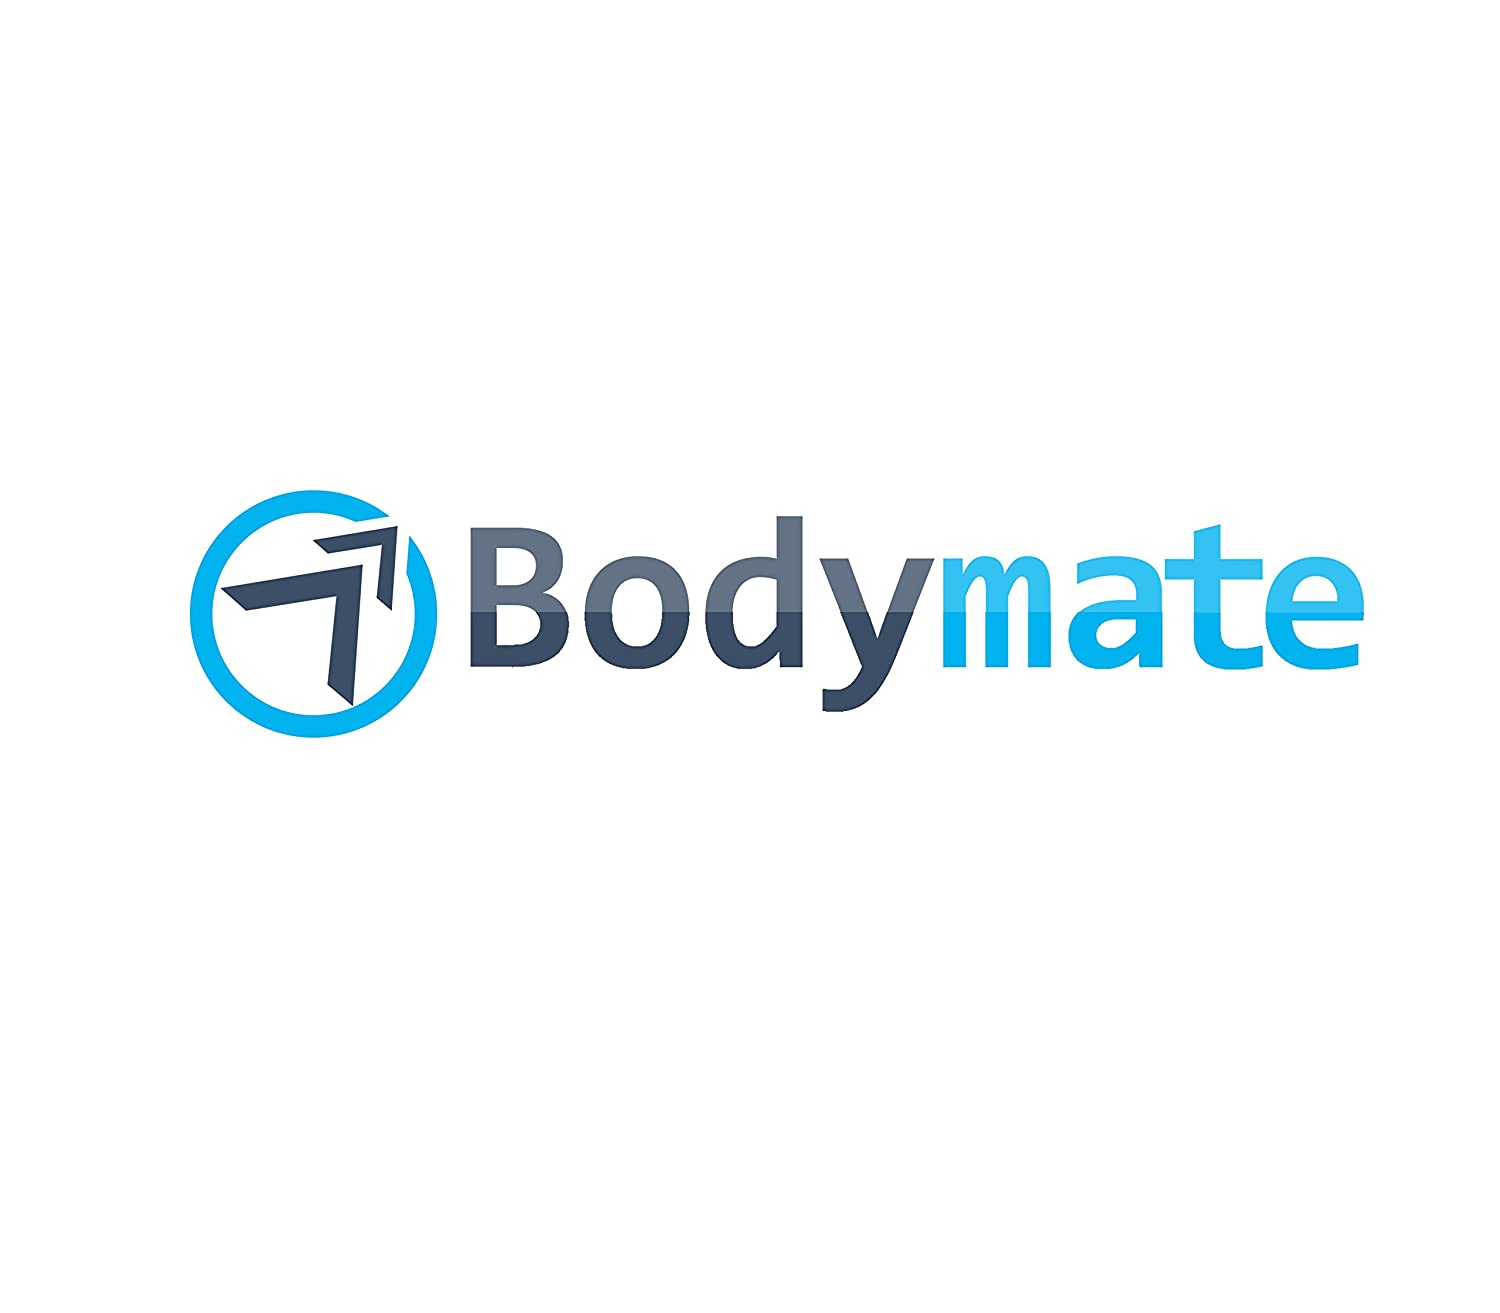 Bodymate herbal loss product weight - Amazon Com Bodymate Thigh Trimmers Slimmers Includes 2 Premium Shapers Workout Enhancer Belt Wrap Muscle Toning Leg Support Fat Burning Body Weight Loss